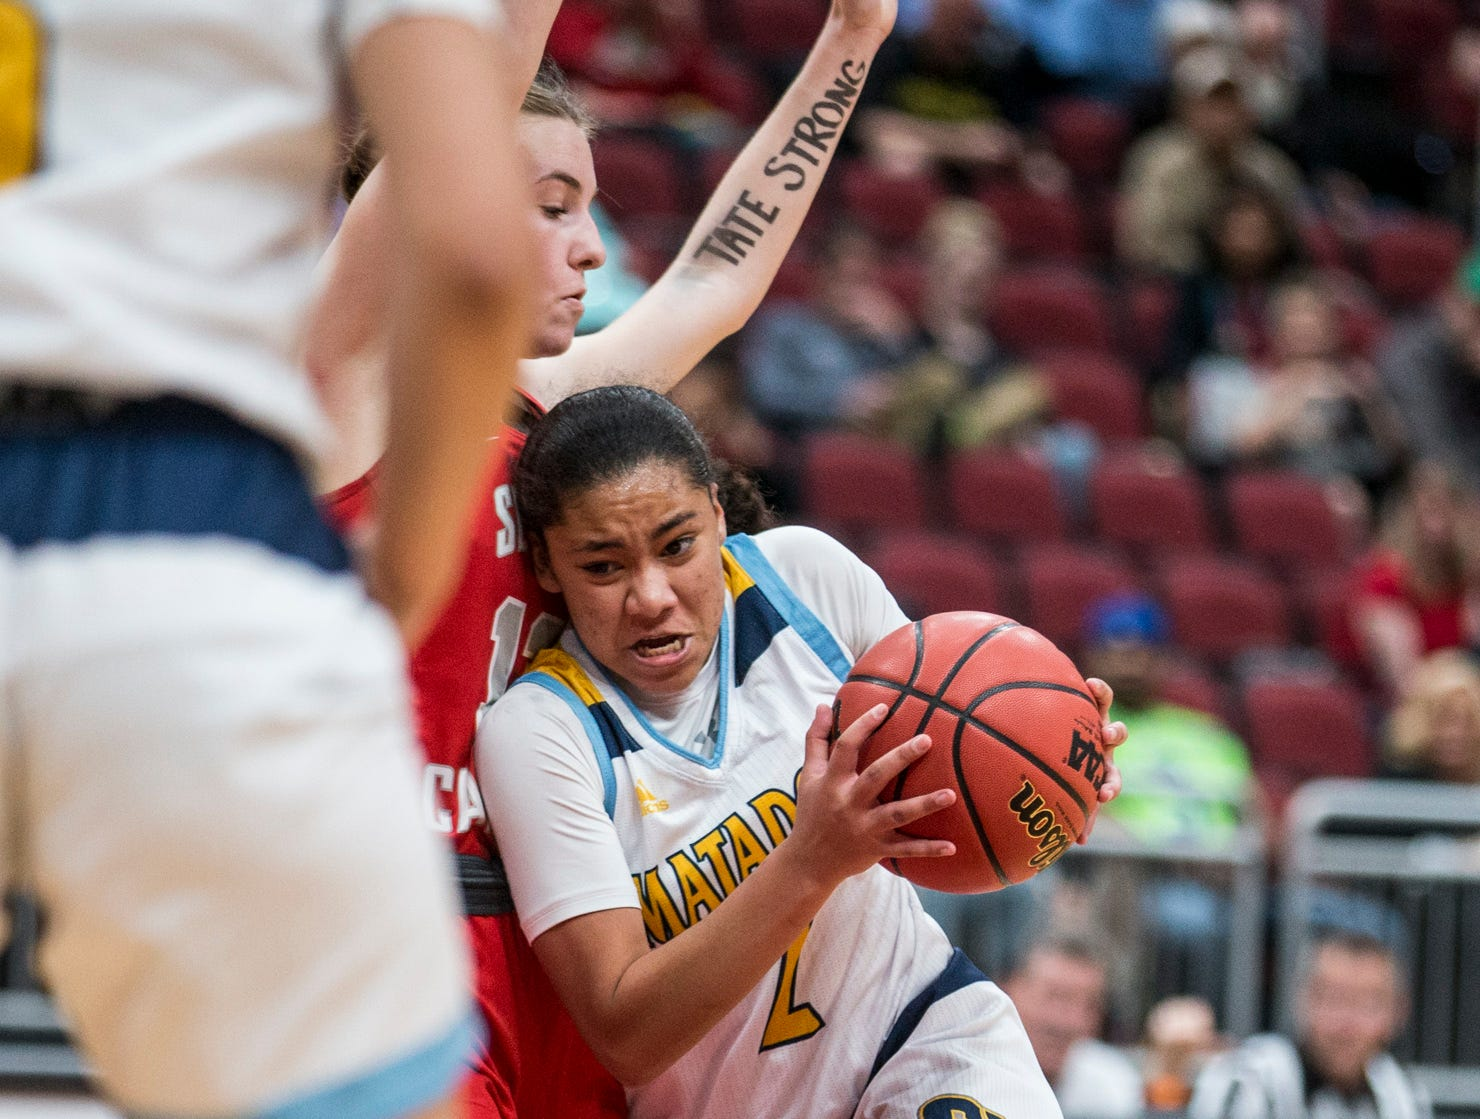 Shadow Mountain's Senya Rabouin drives to the basket against Seton Catholic during the 4A girls basketball championship on Saturday, Feb. 23, 2019, at Gila River Arena in Glendale, Ariz.